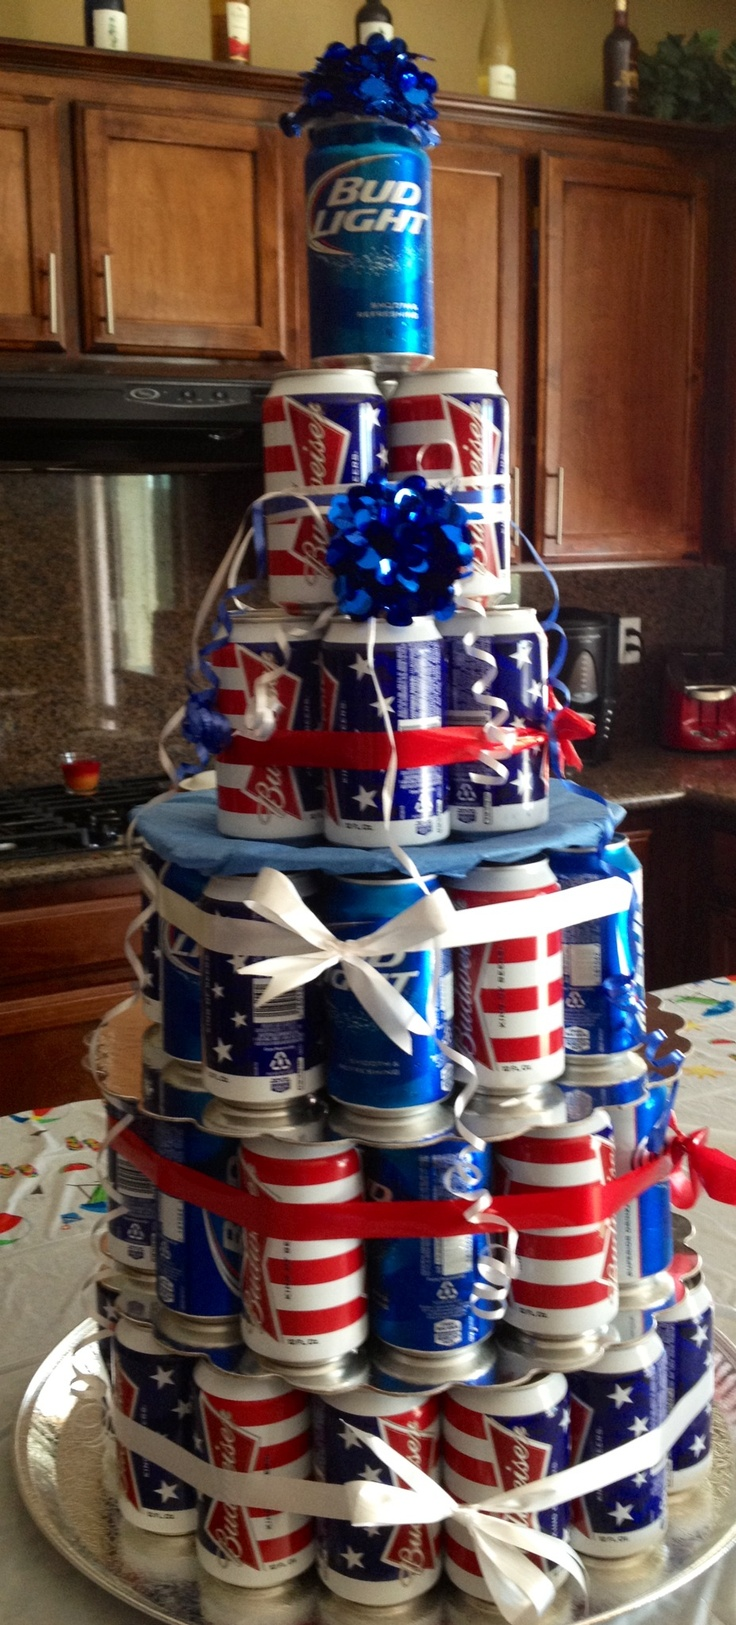 Best 25 Budweiser Cake Ideas On Pinterest 21st Birthday